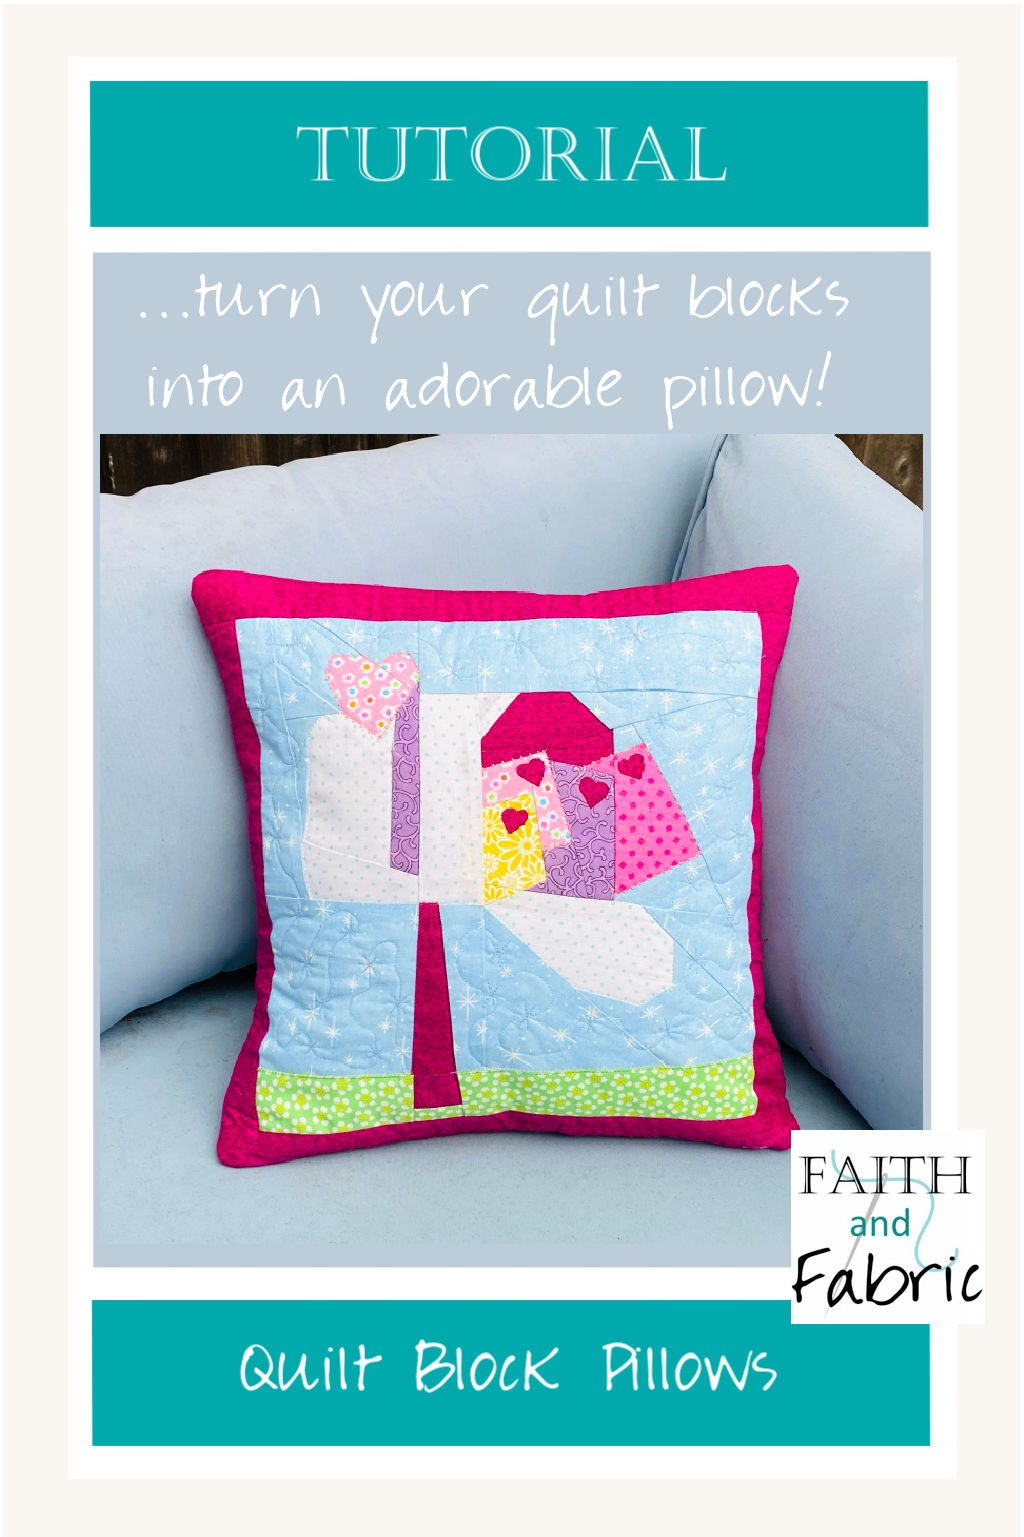 Tutorial on how to make a quilt block into an envelope pillow case with step-by-step video